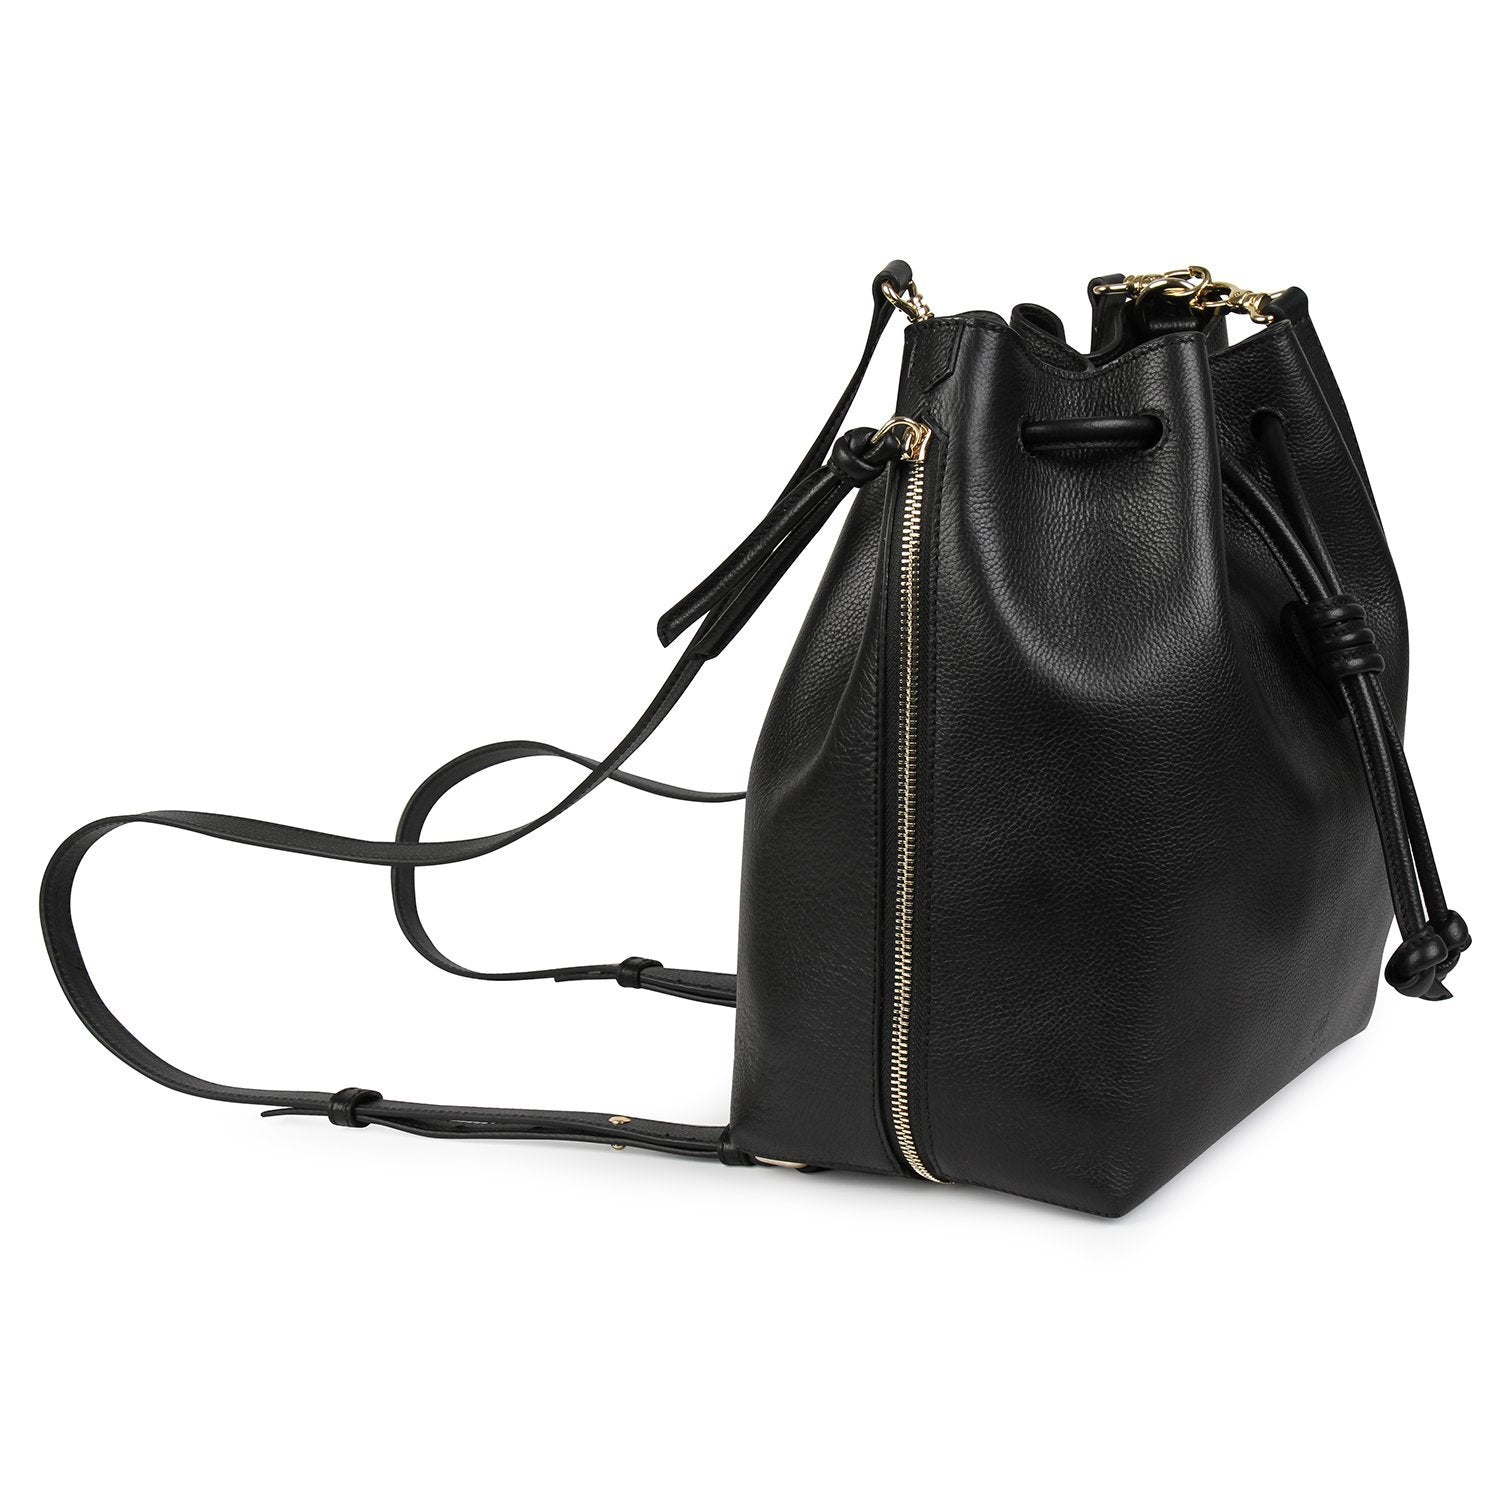 A convertible medium leather black bucket bag that could be used as a backpack, side image.